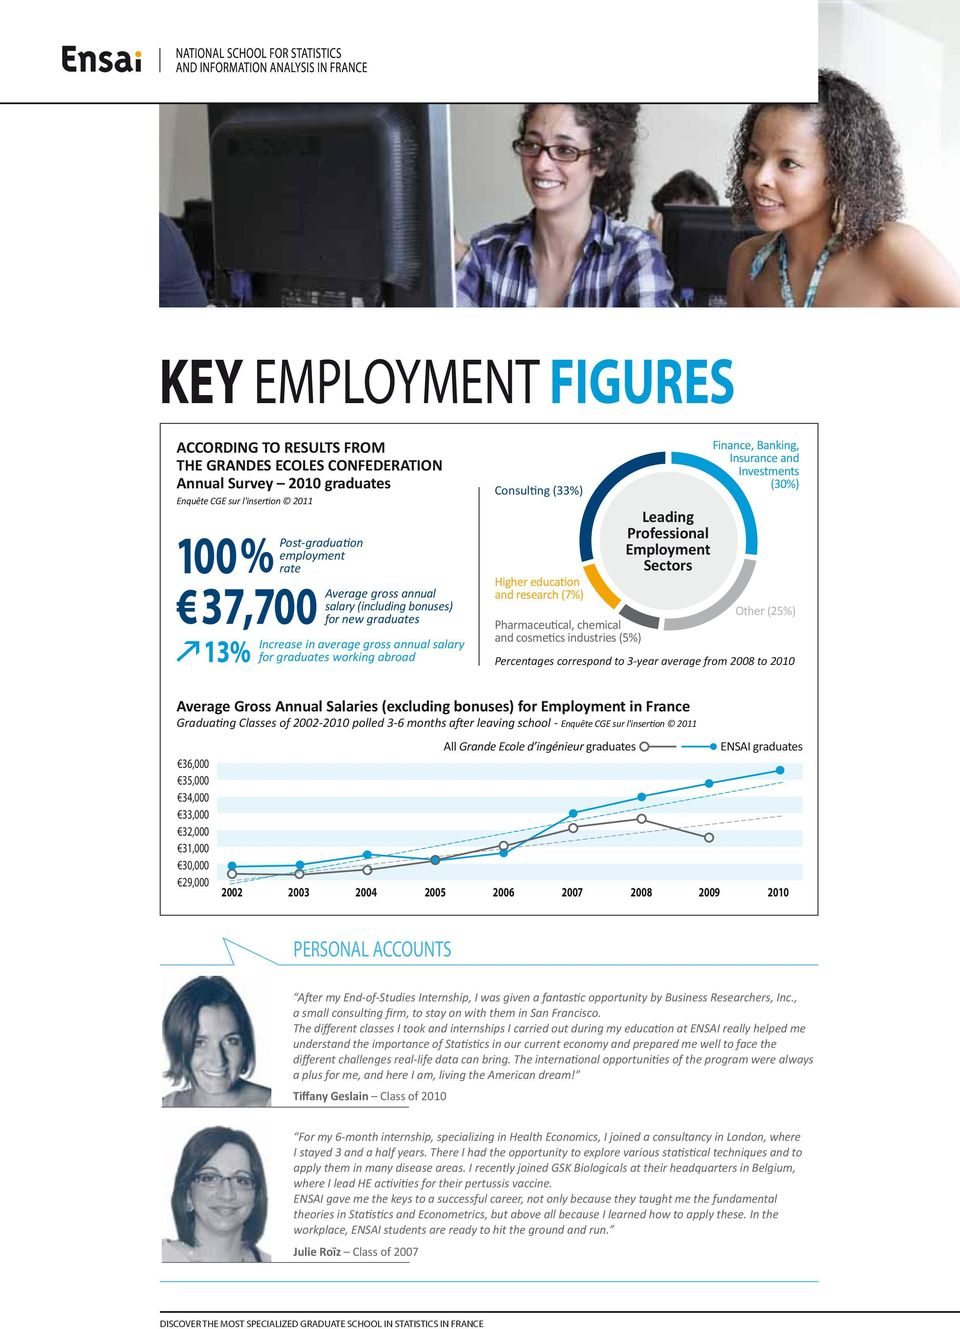 cosmetics industries (5%) Leading Professional Employment Sectors Finance, Banking, Insurance and Investments (30%) Other (25%) Percentages correspond to 3-year average from 2008 to 2010 Average